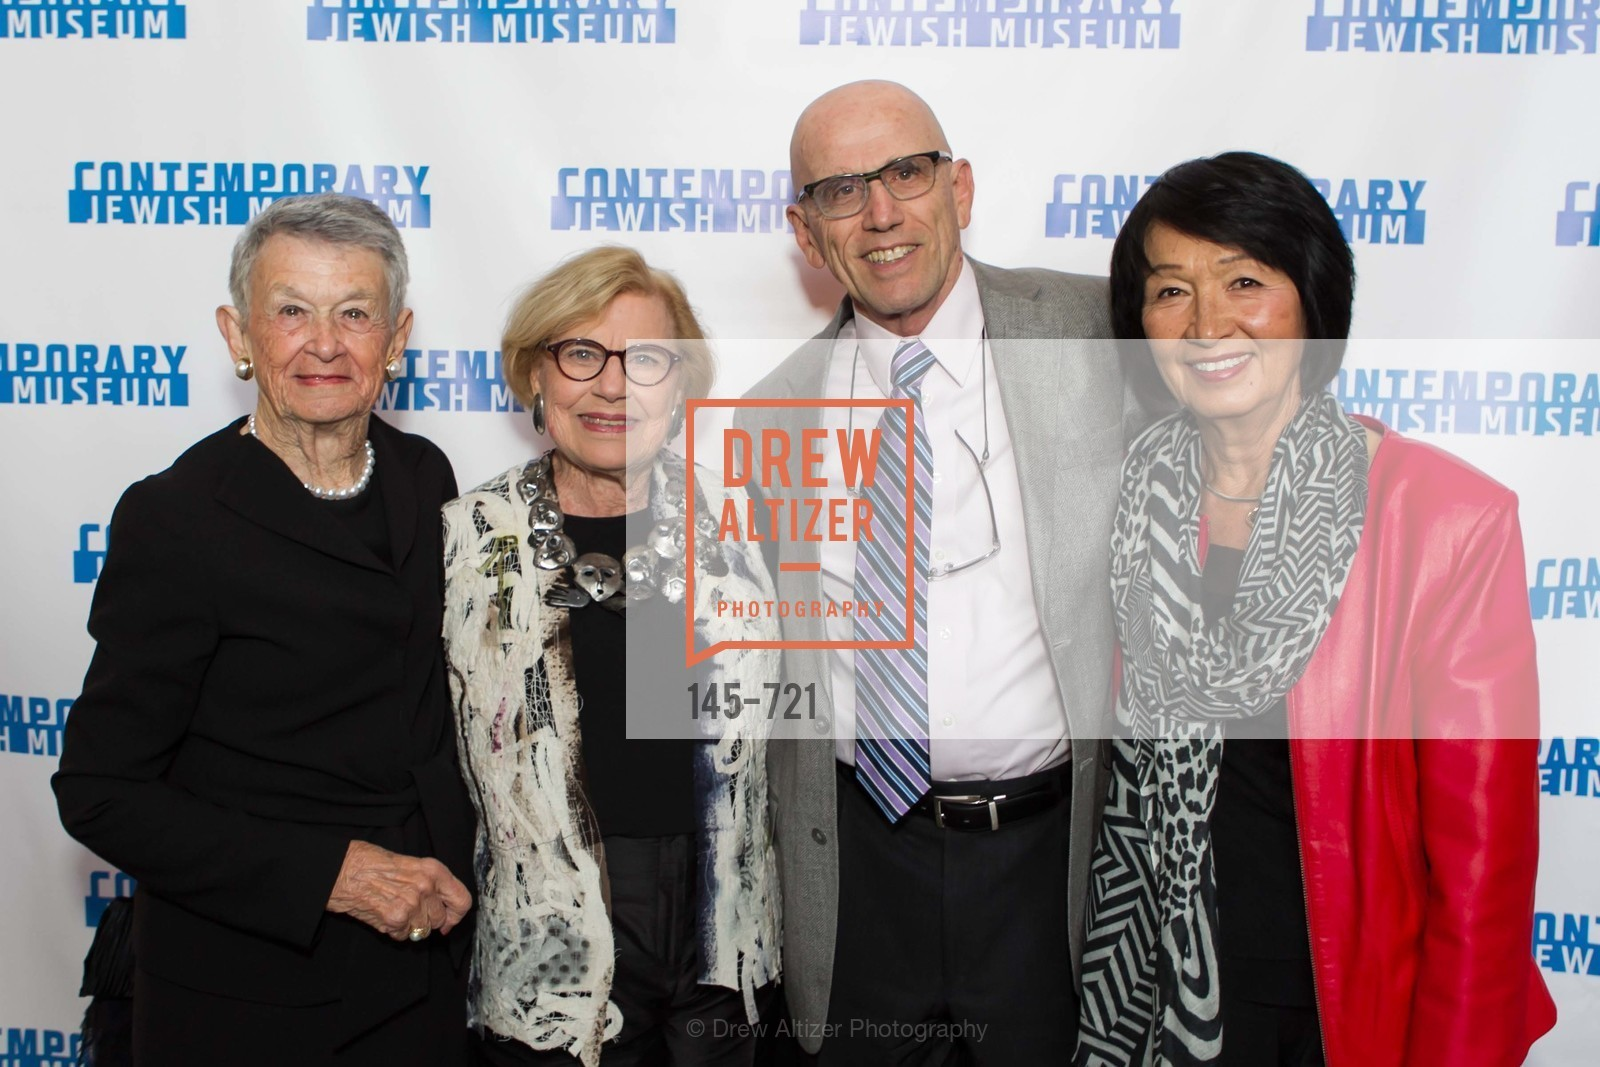 Adele Corvin, Dorothy Saxe, Larry Marks, Gladys Marks, The 2015 Dorothy Saxe Invitational Celebration at the JEWISH MUSEUM, US, May 12th, 2015,Drew Altizer, Drew Altizer Photography, full-service agency, private events, San Francisco photographer, photographer california